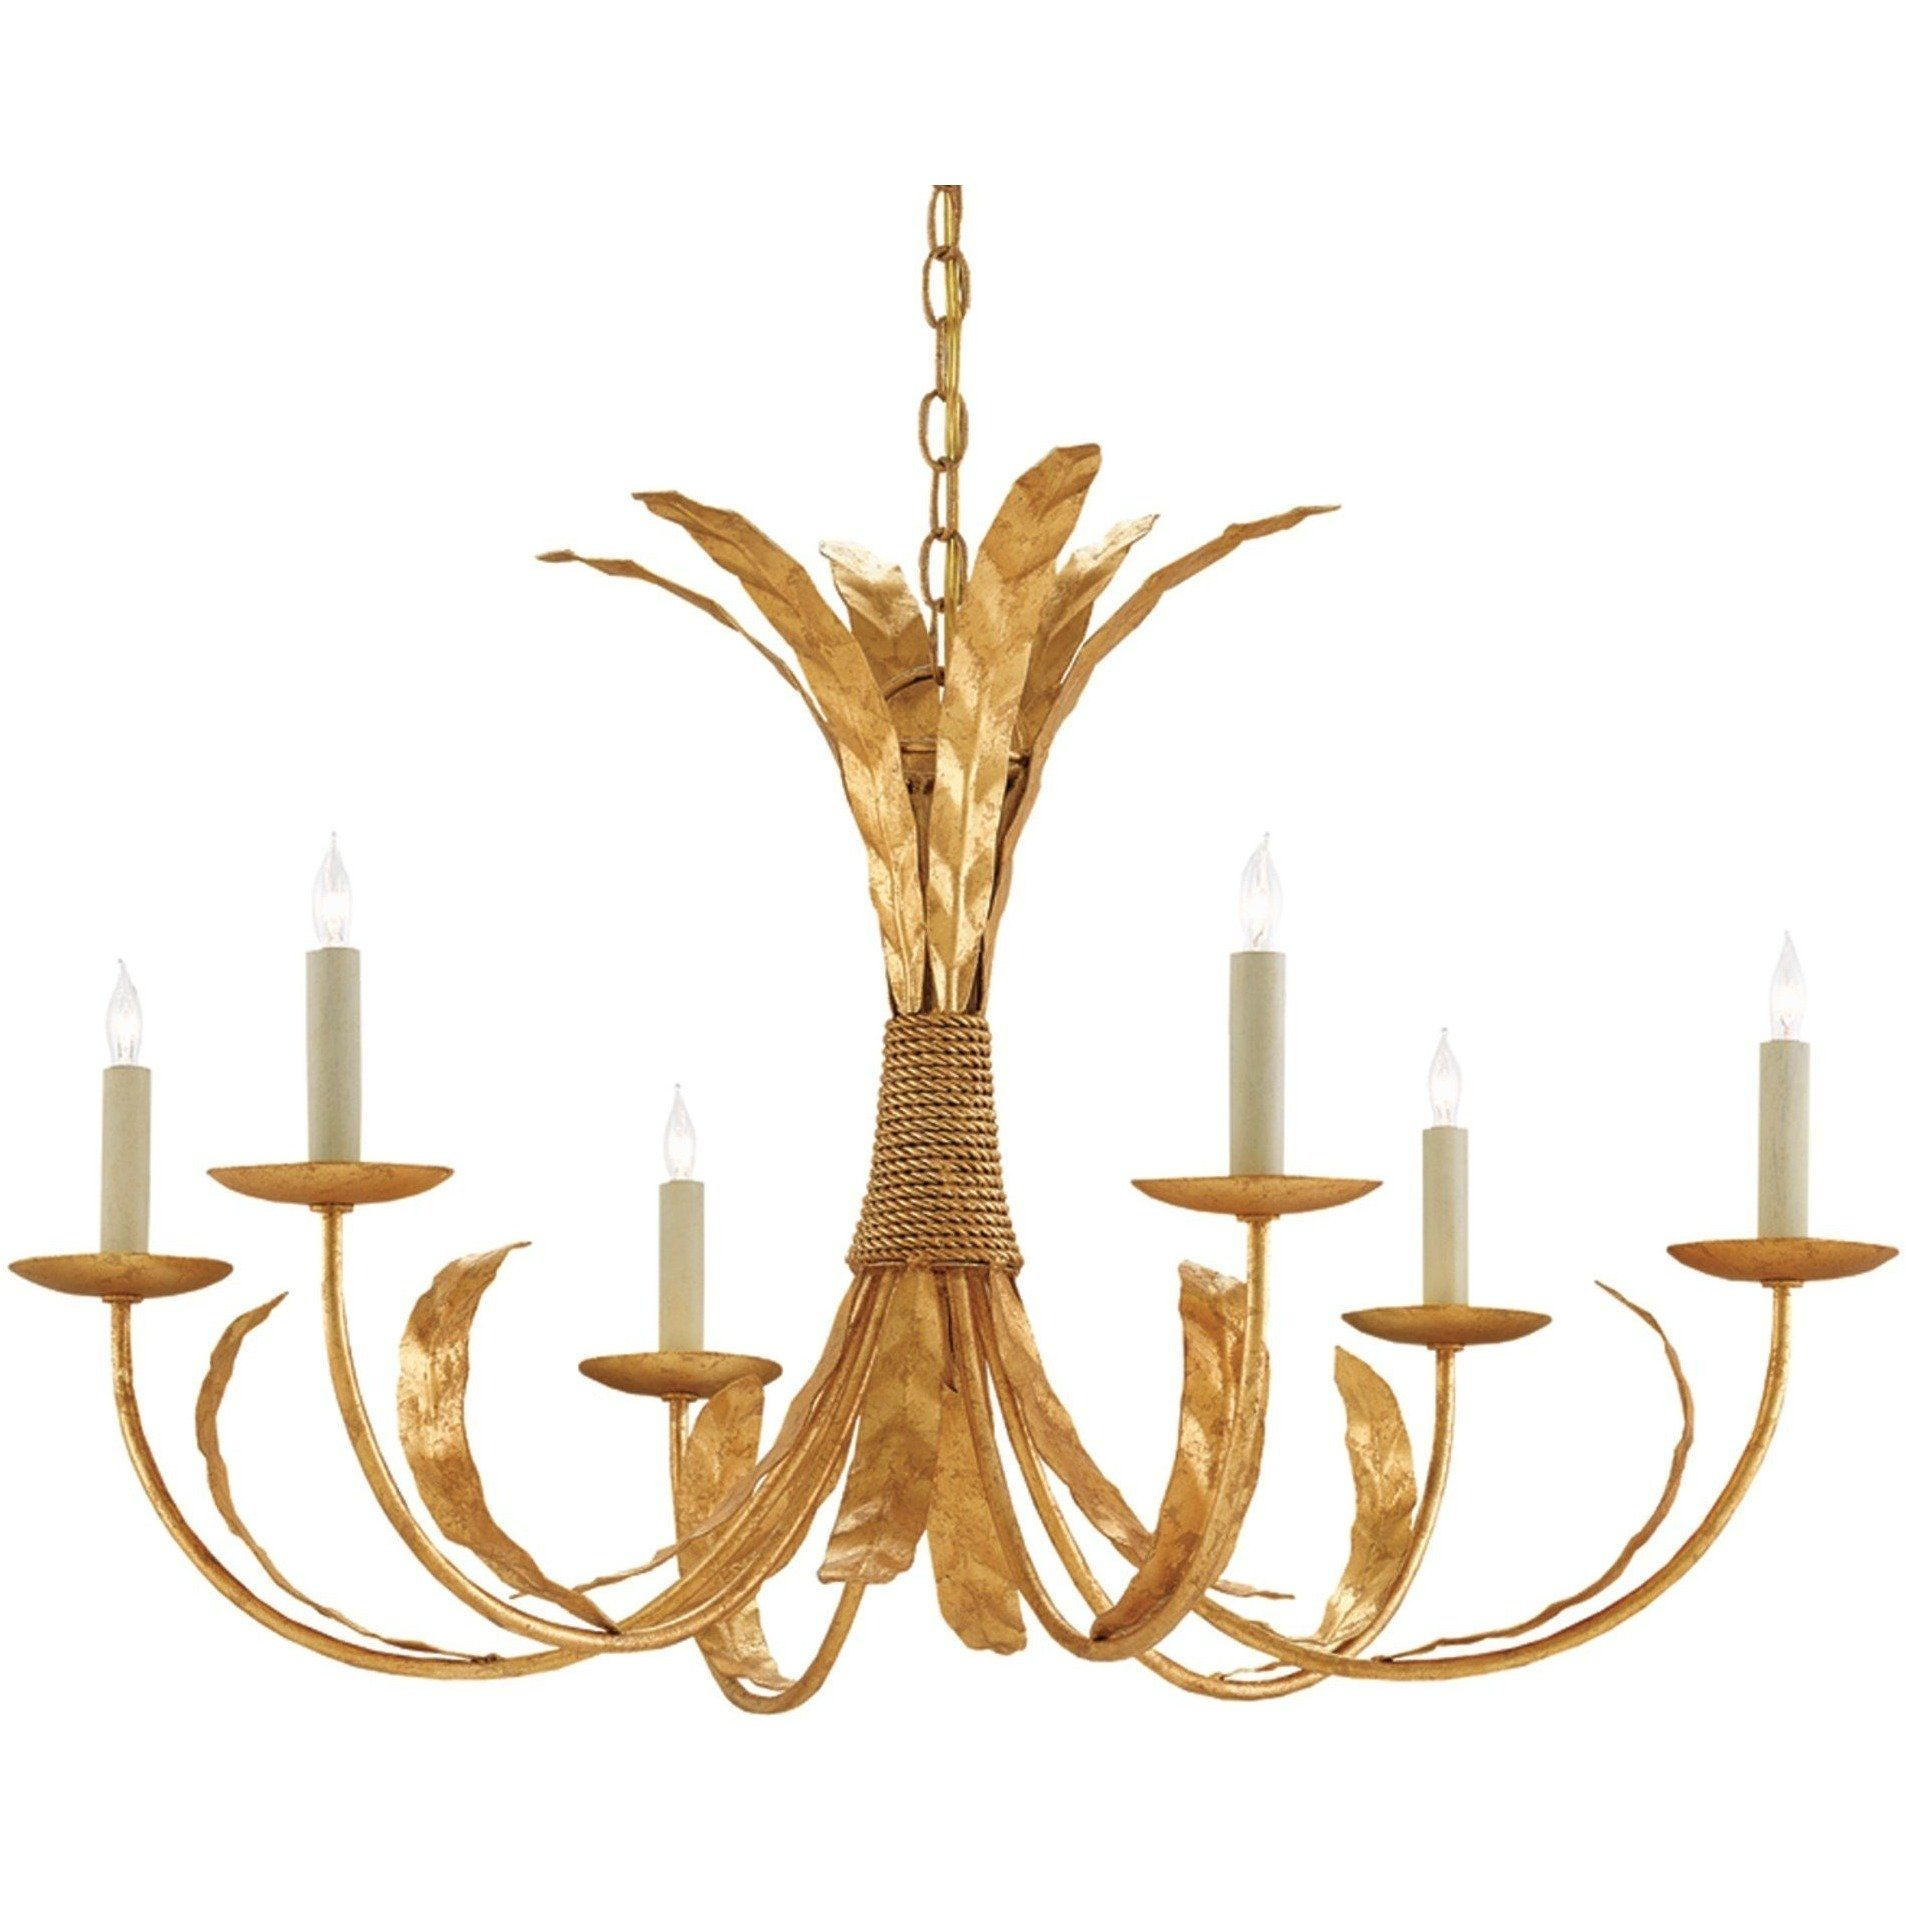 Currey and company bette chandelier 9000 0186 lovecup currey and company bette chandelier 9000 0186 aloadofball Images